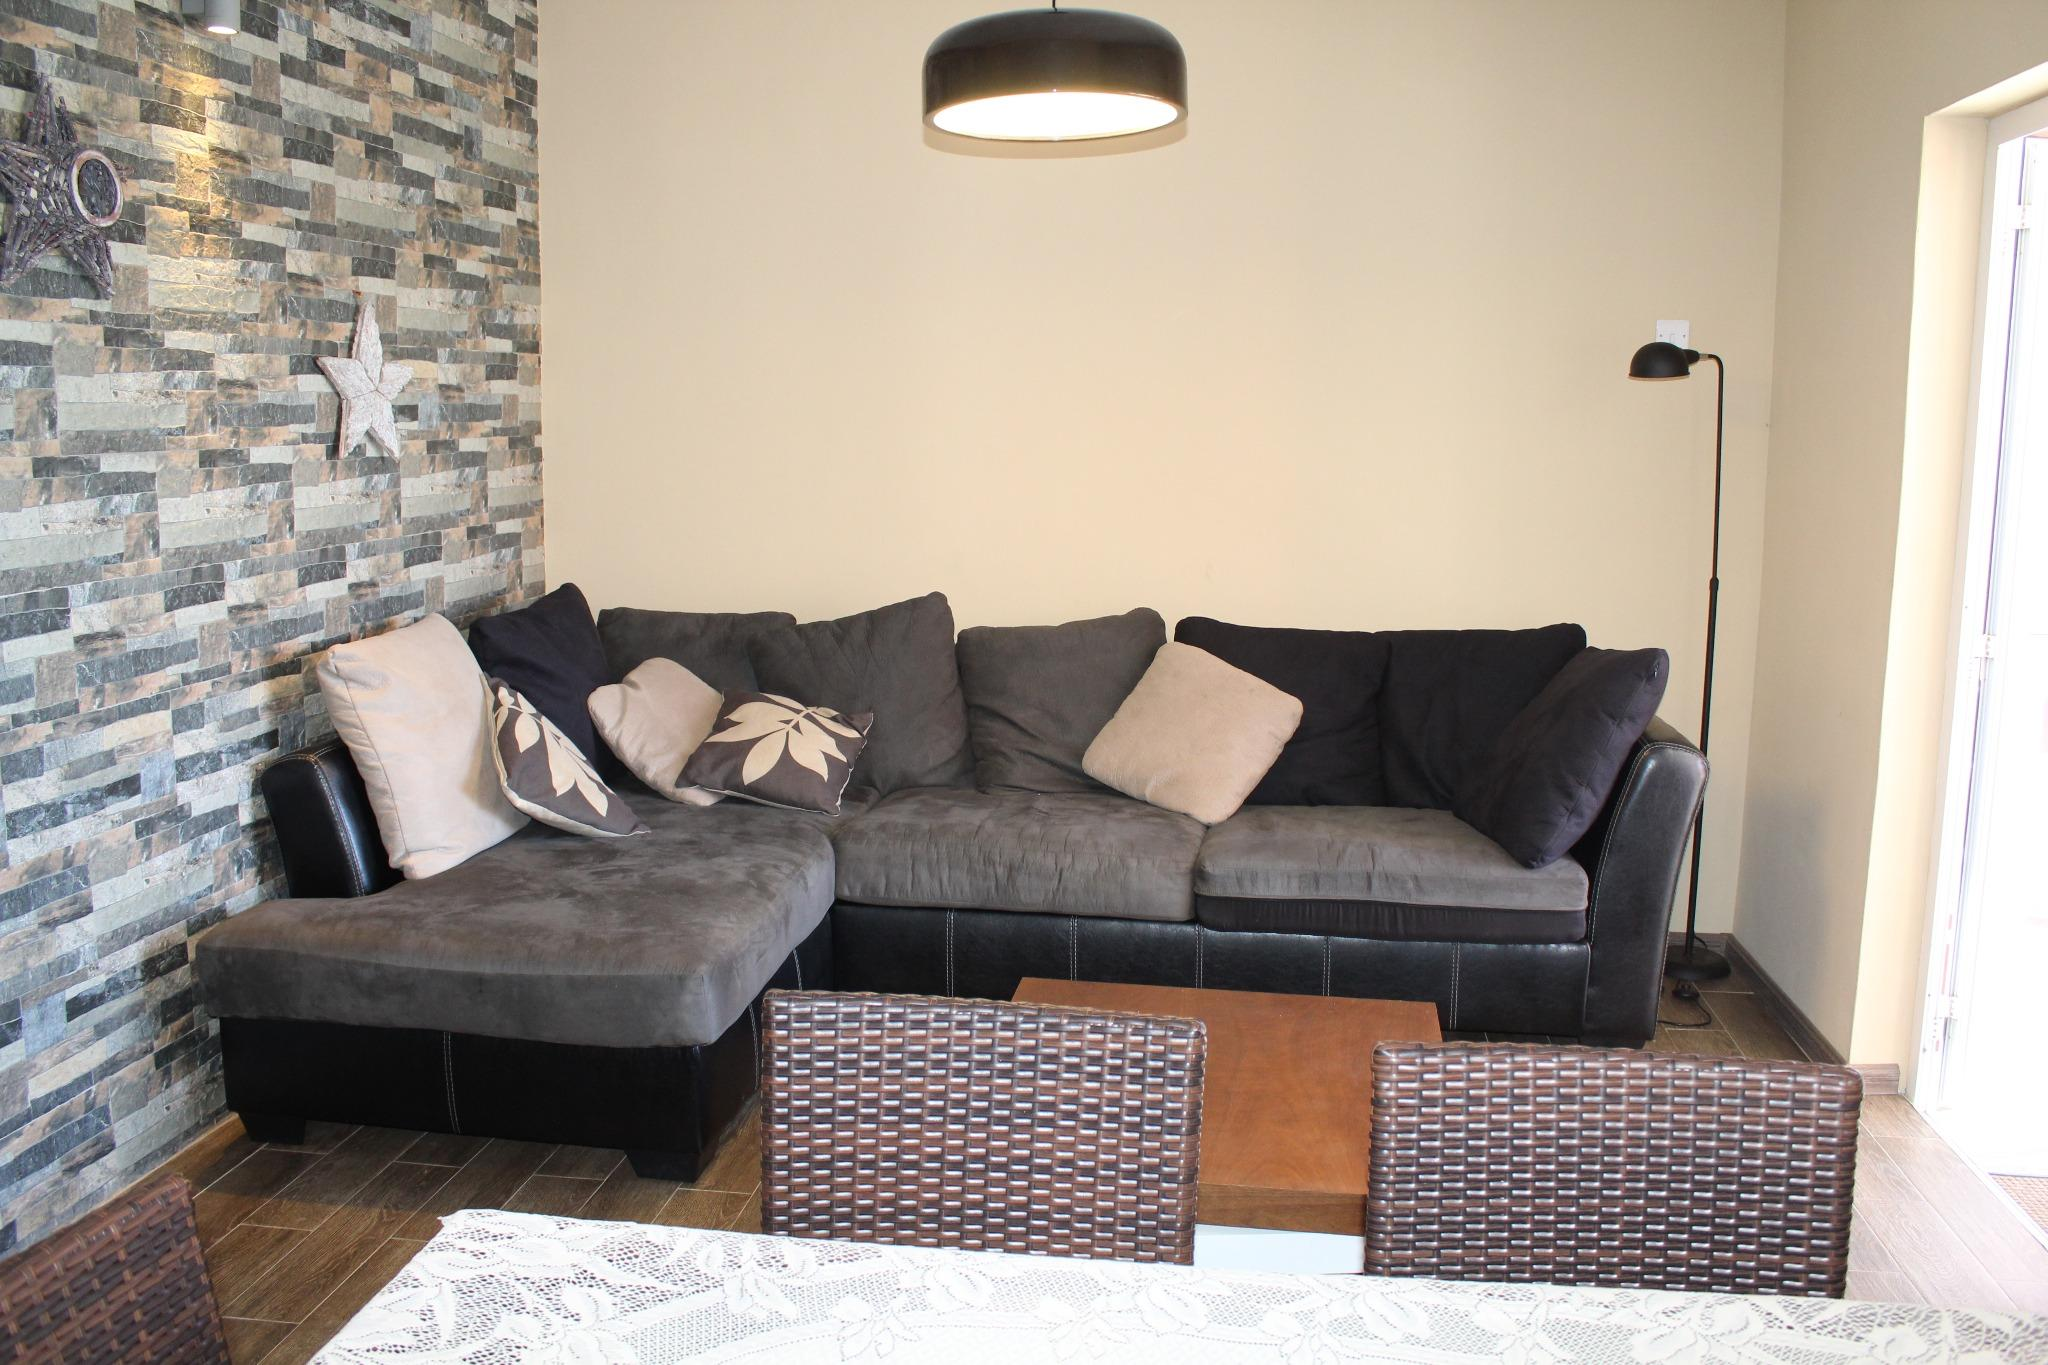 To rent – Beautiful furnished and equipped apartment of 80 m2 in Pereybere on the 1st floor of a 24/7 secured residence